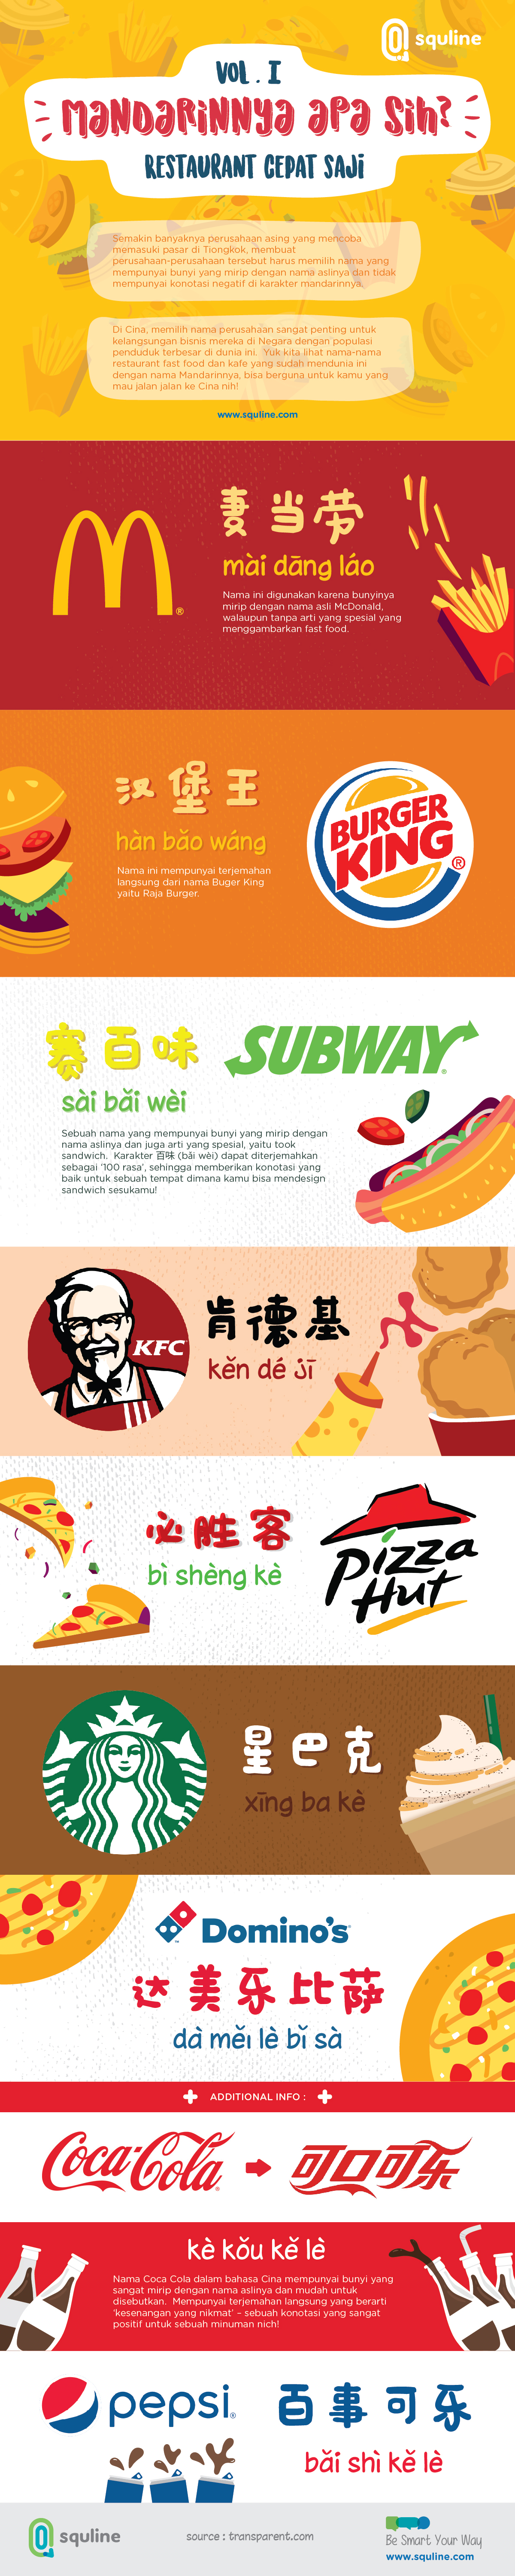 This Pin Contains Information About The Name Of Fast Food Restaurants In Mandarin If You Go To Chinese Speaking Cou Food Fast Food Restaurant Restaurant Names